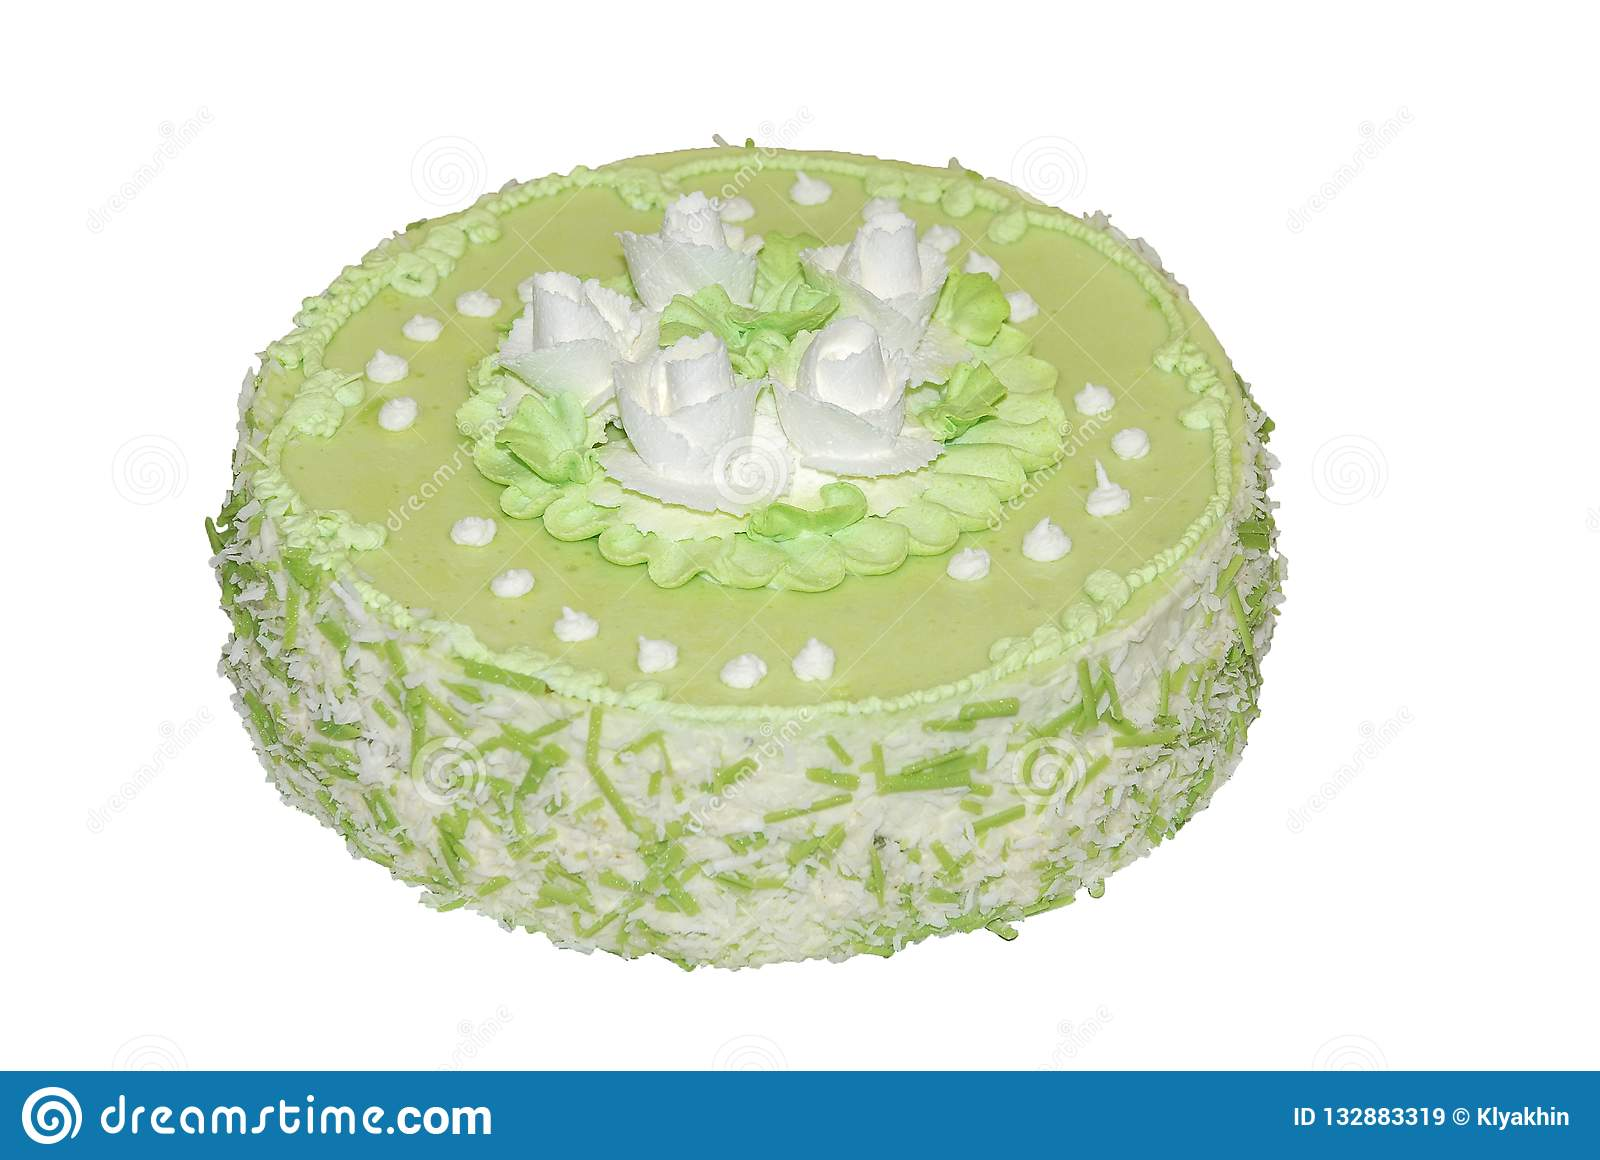 Cake Flavored Green Tea Decorated With White Flowers